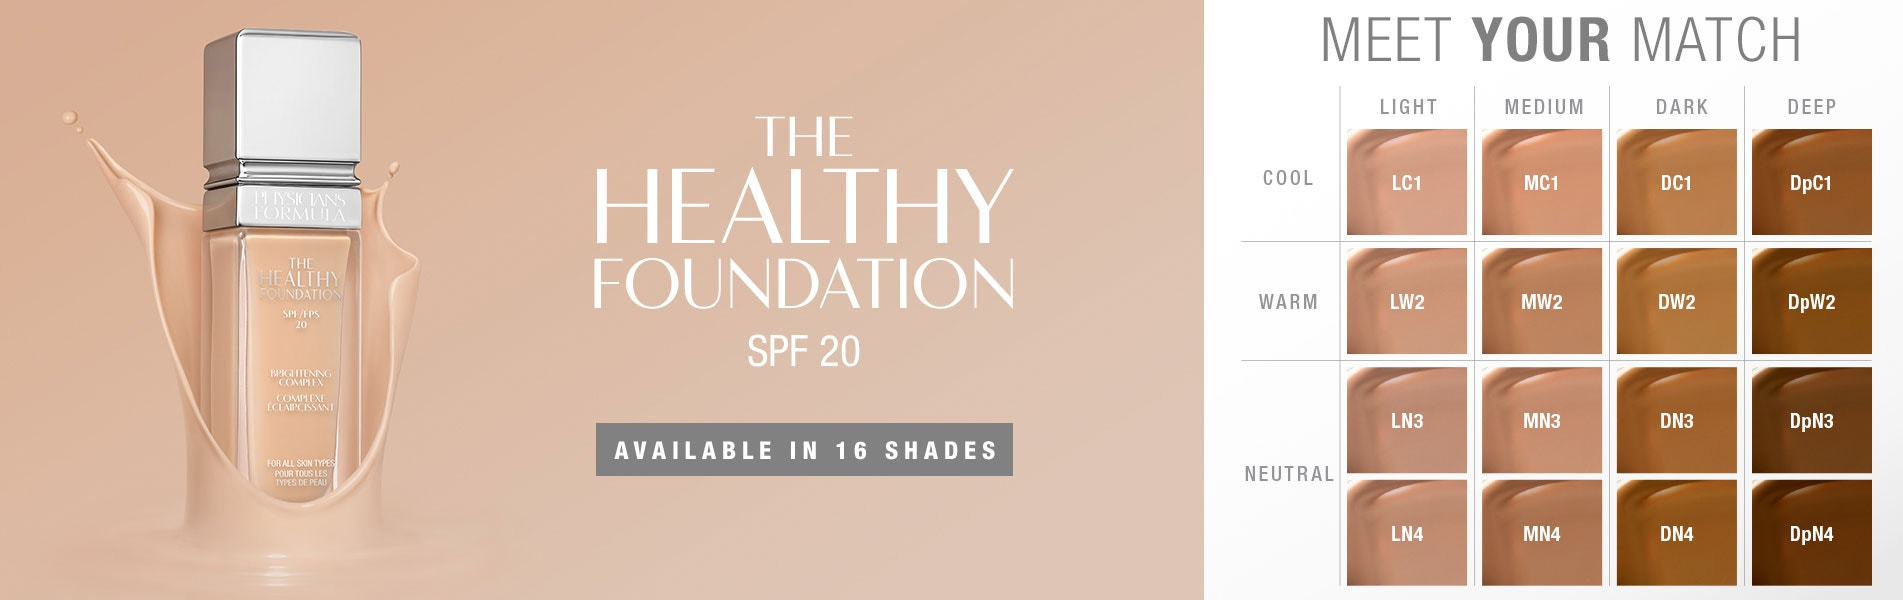 The Healthy Foundation